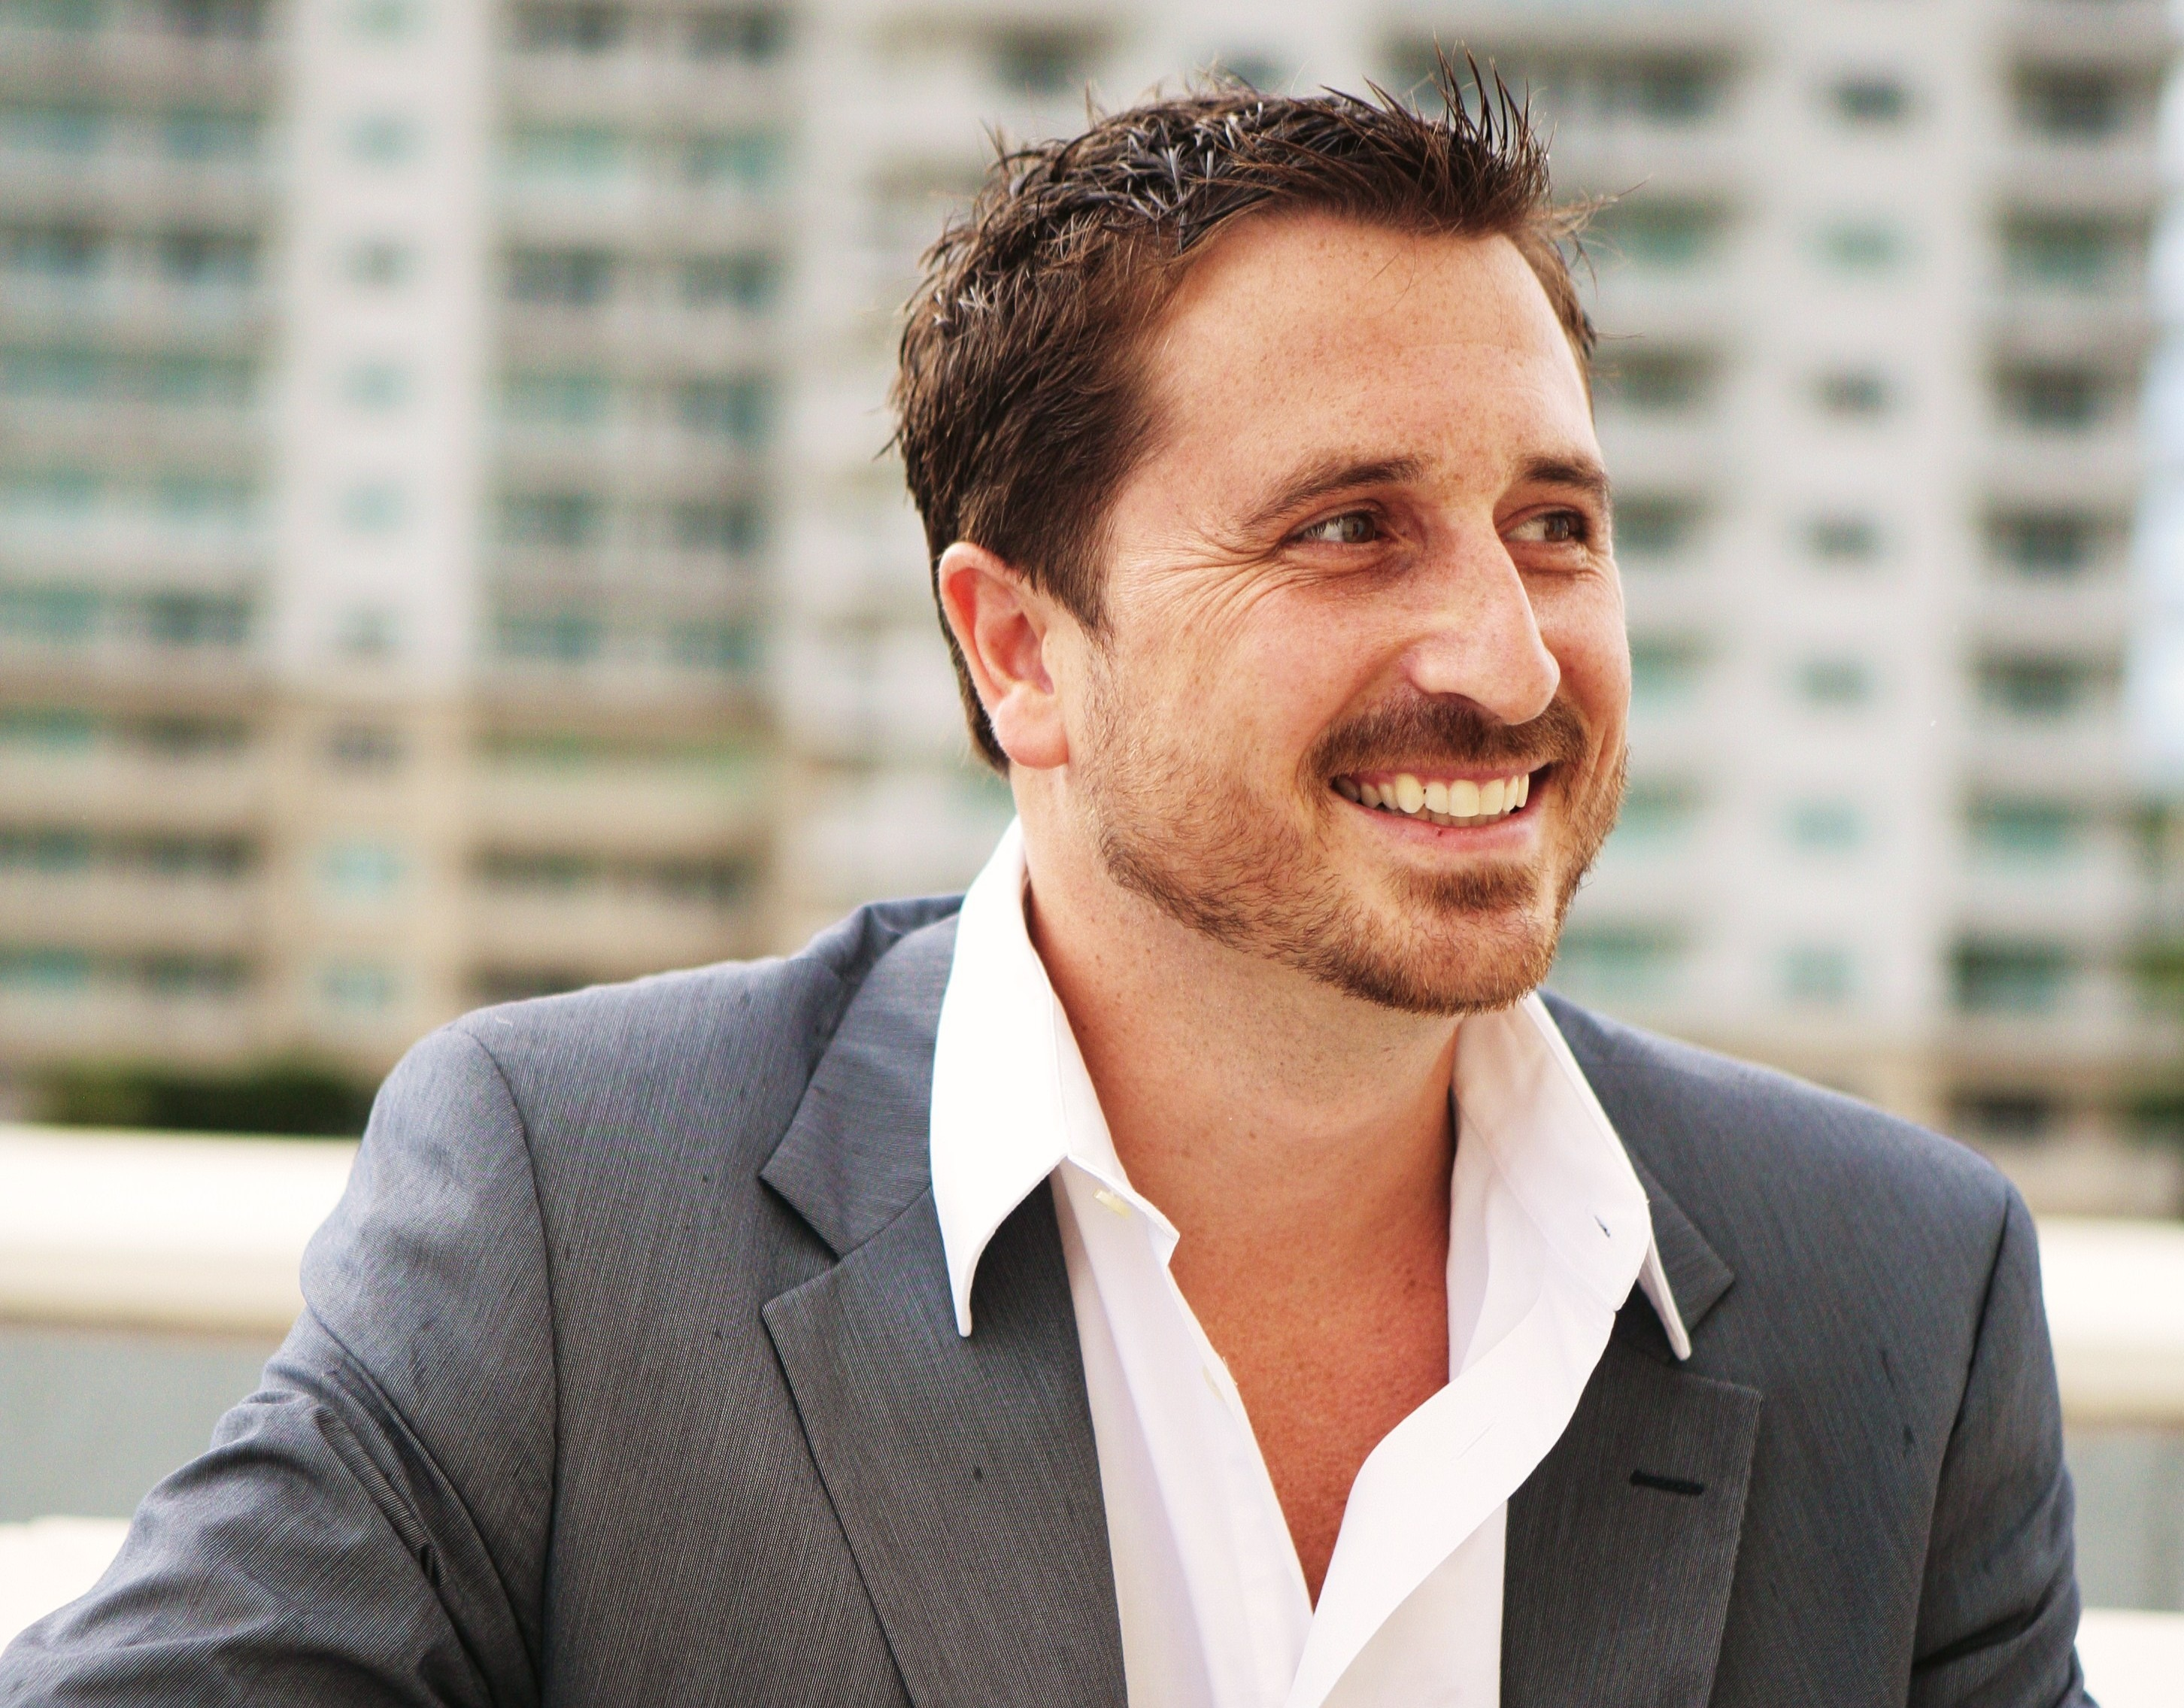 Allen acts as downtown Orlando's high-rise matchmaker